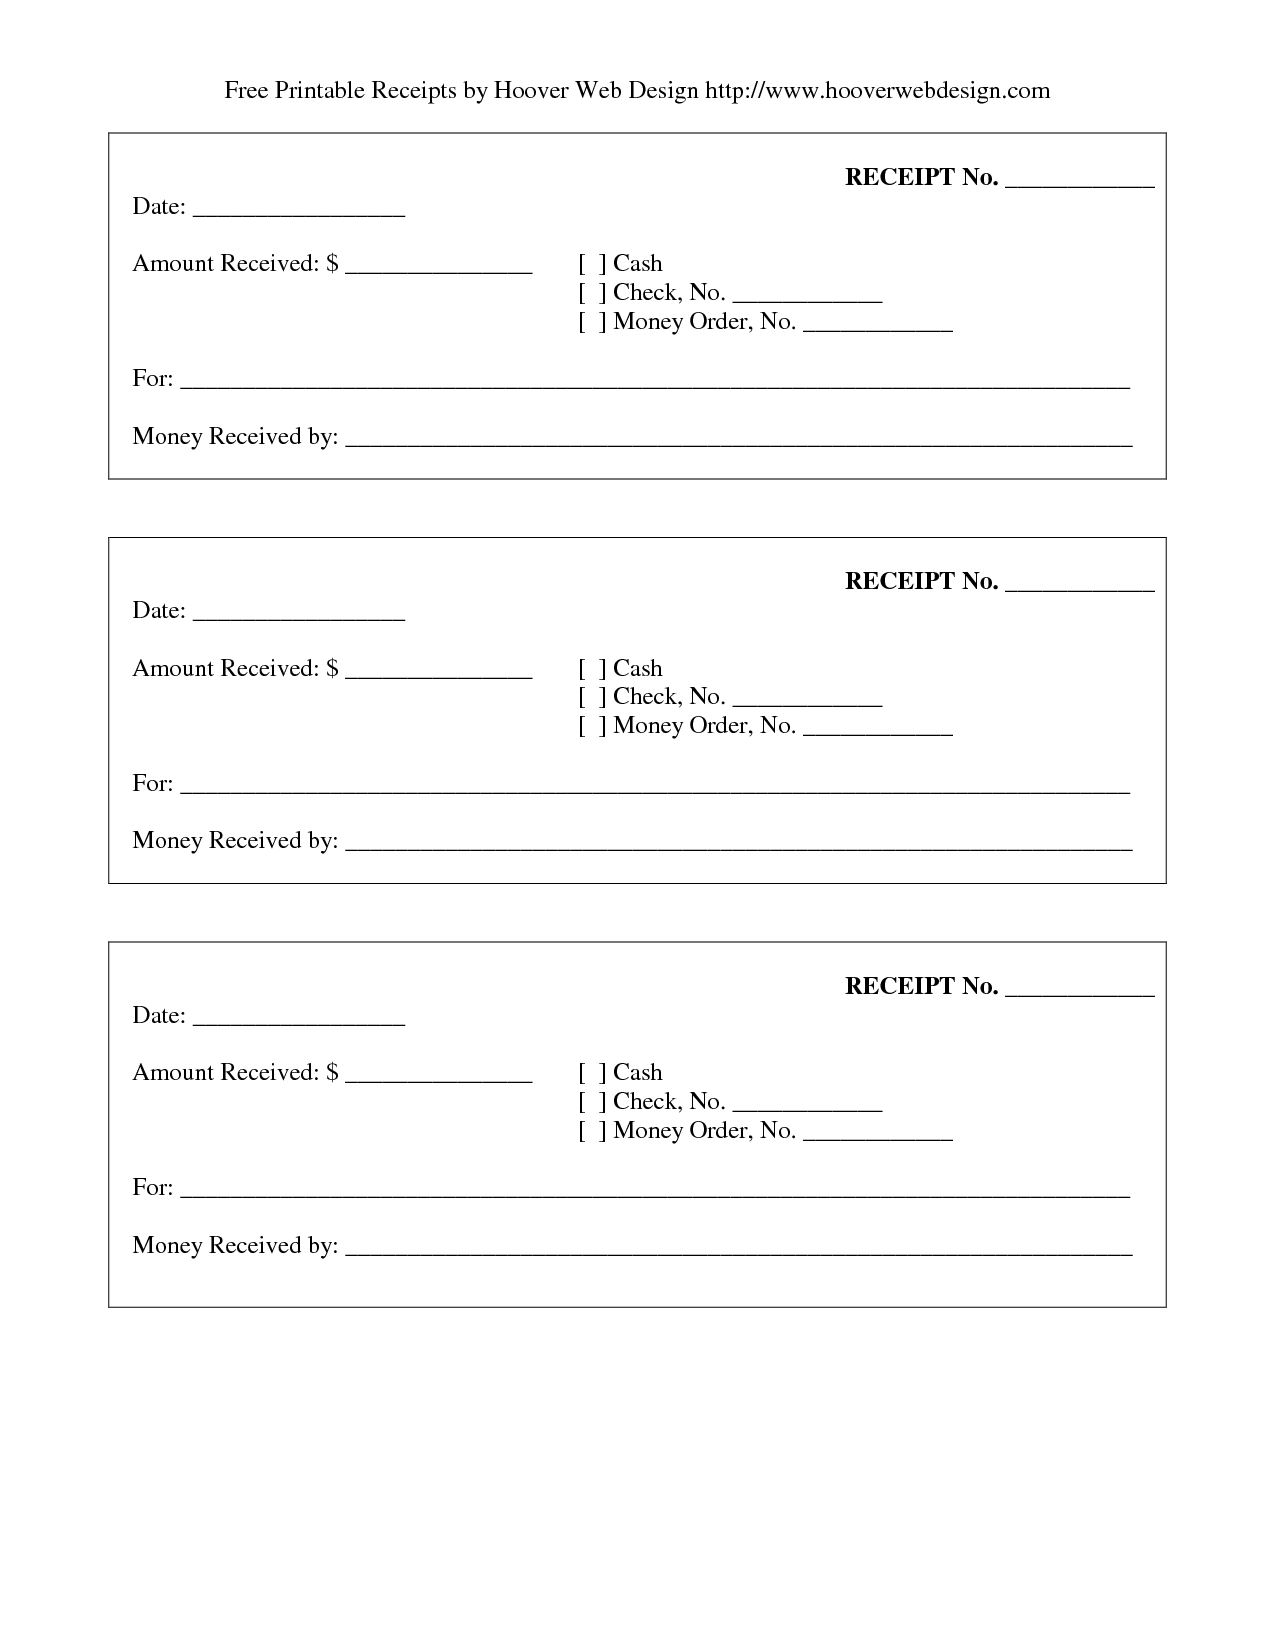 Printable Receipts Templates